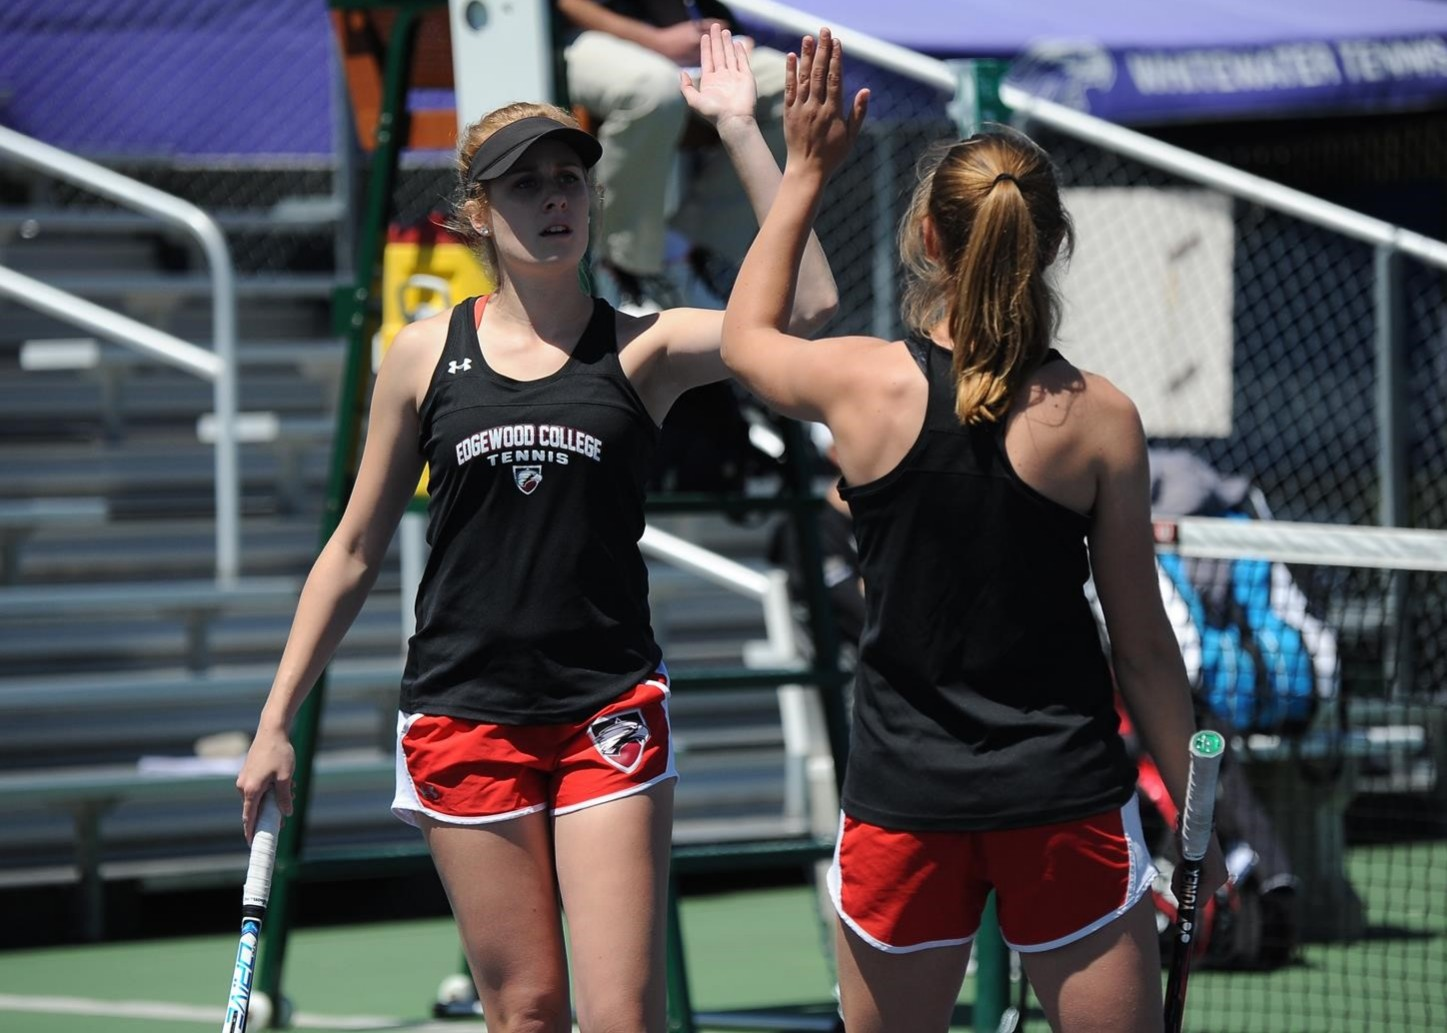 Edgewood fell to Carleton, 5-0, Friday in an NCAA Division III Women's Tennis Championship first-round match.